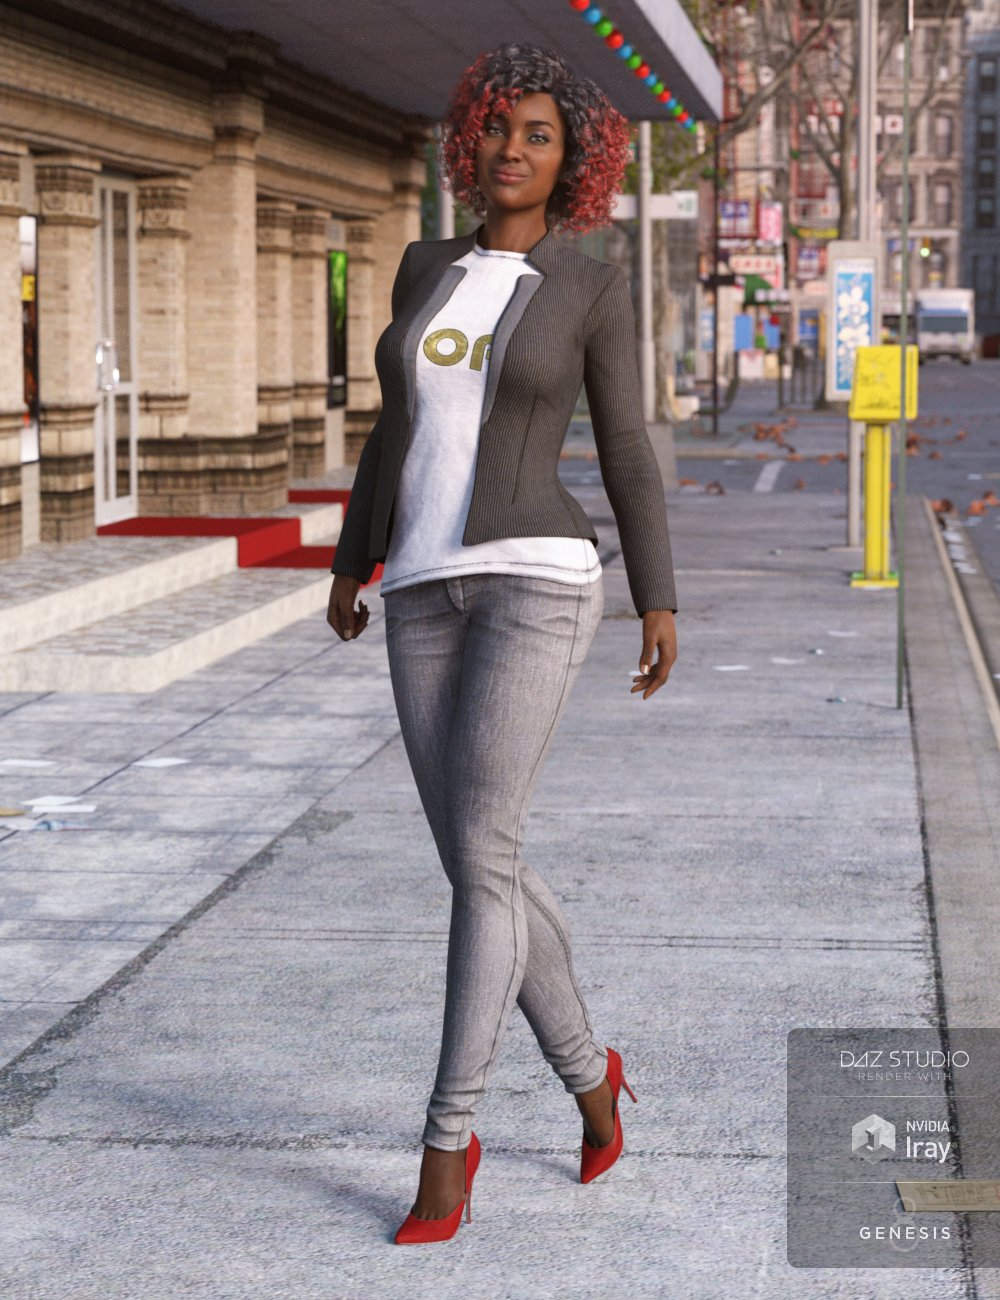 Blazer and Skinny Jeans Outfit for Genesis 8 Female(s) by: LuthbellinaNikisatez, 3D Models by Daz 3D